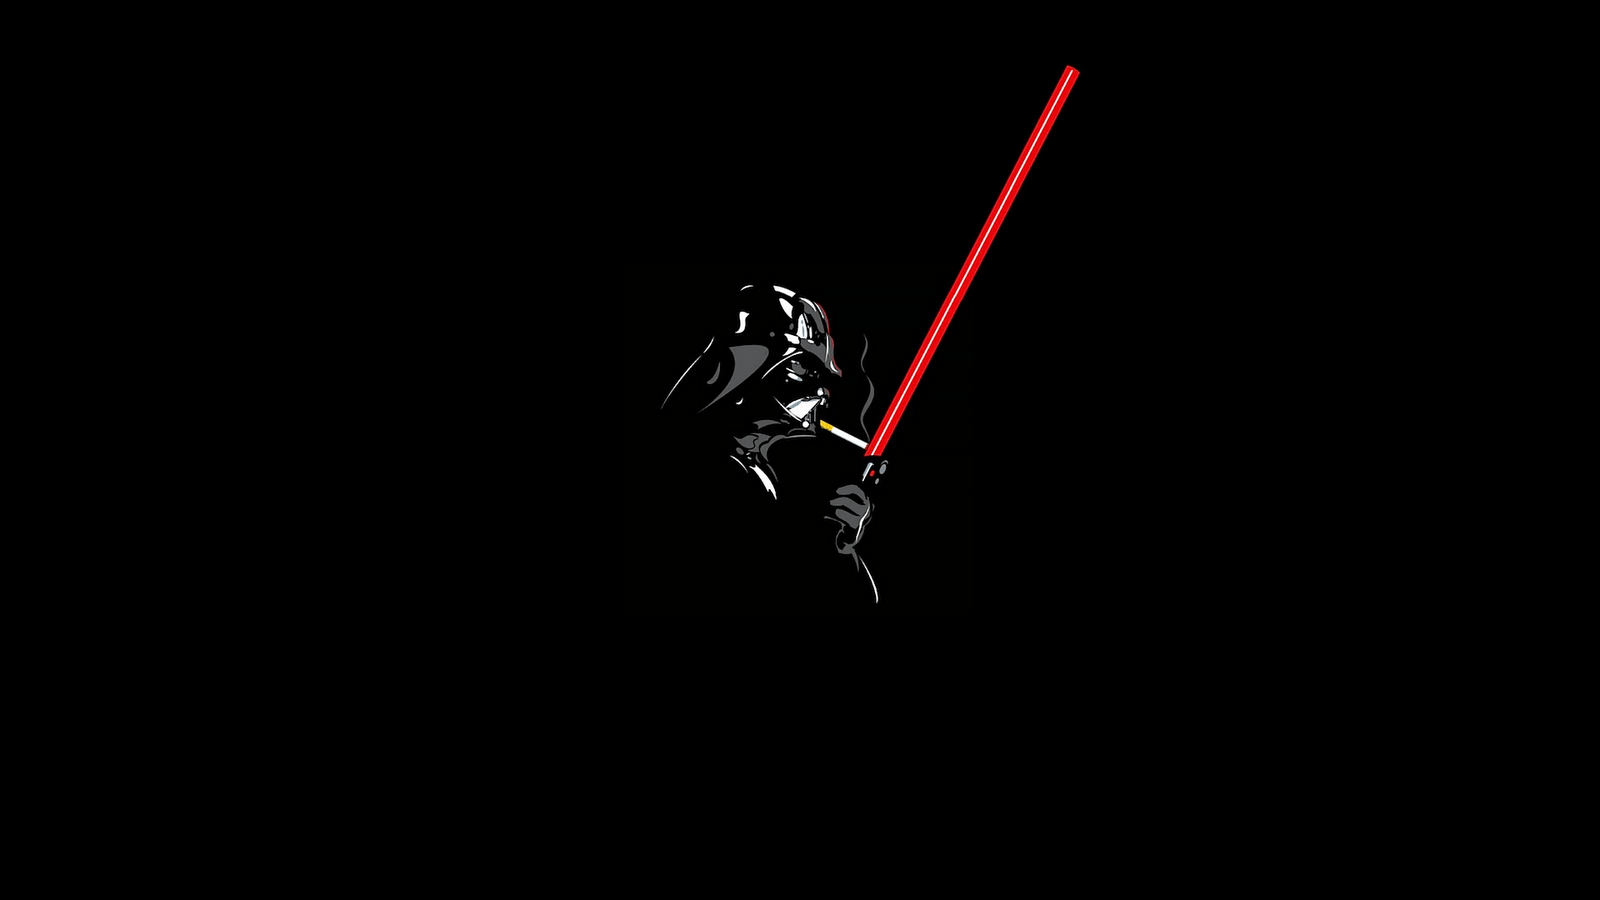 Download Star Wars Awesome General Wallpaper 1600x900